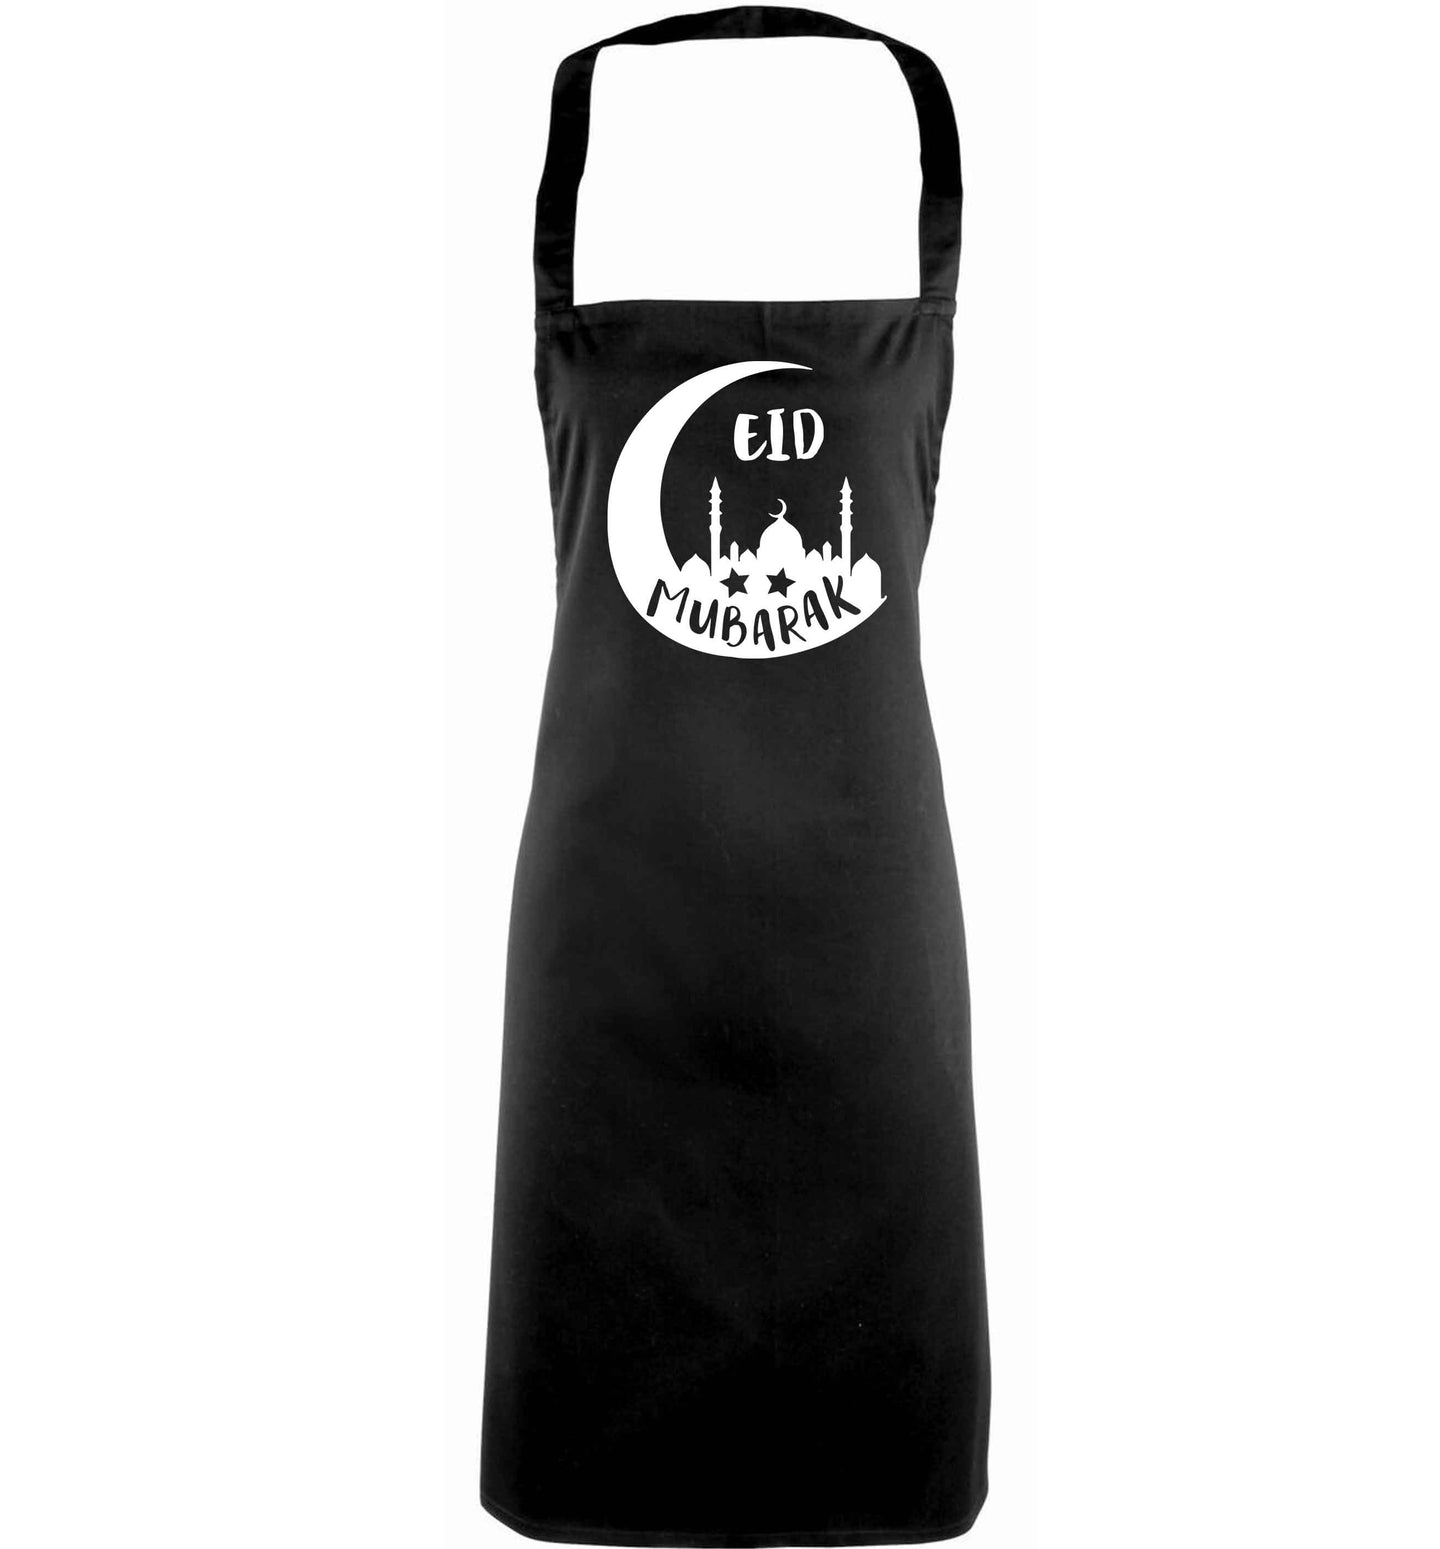 Eid mubarak adults black apron